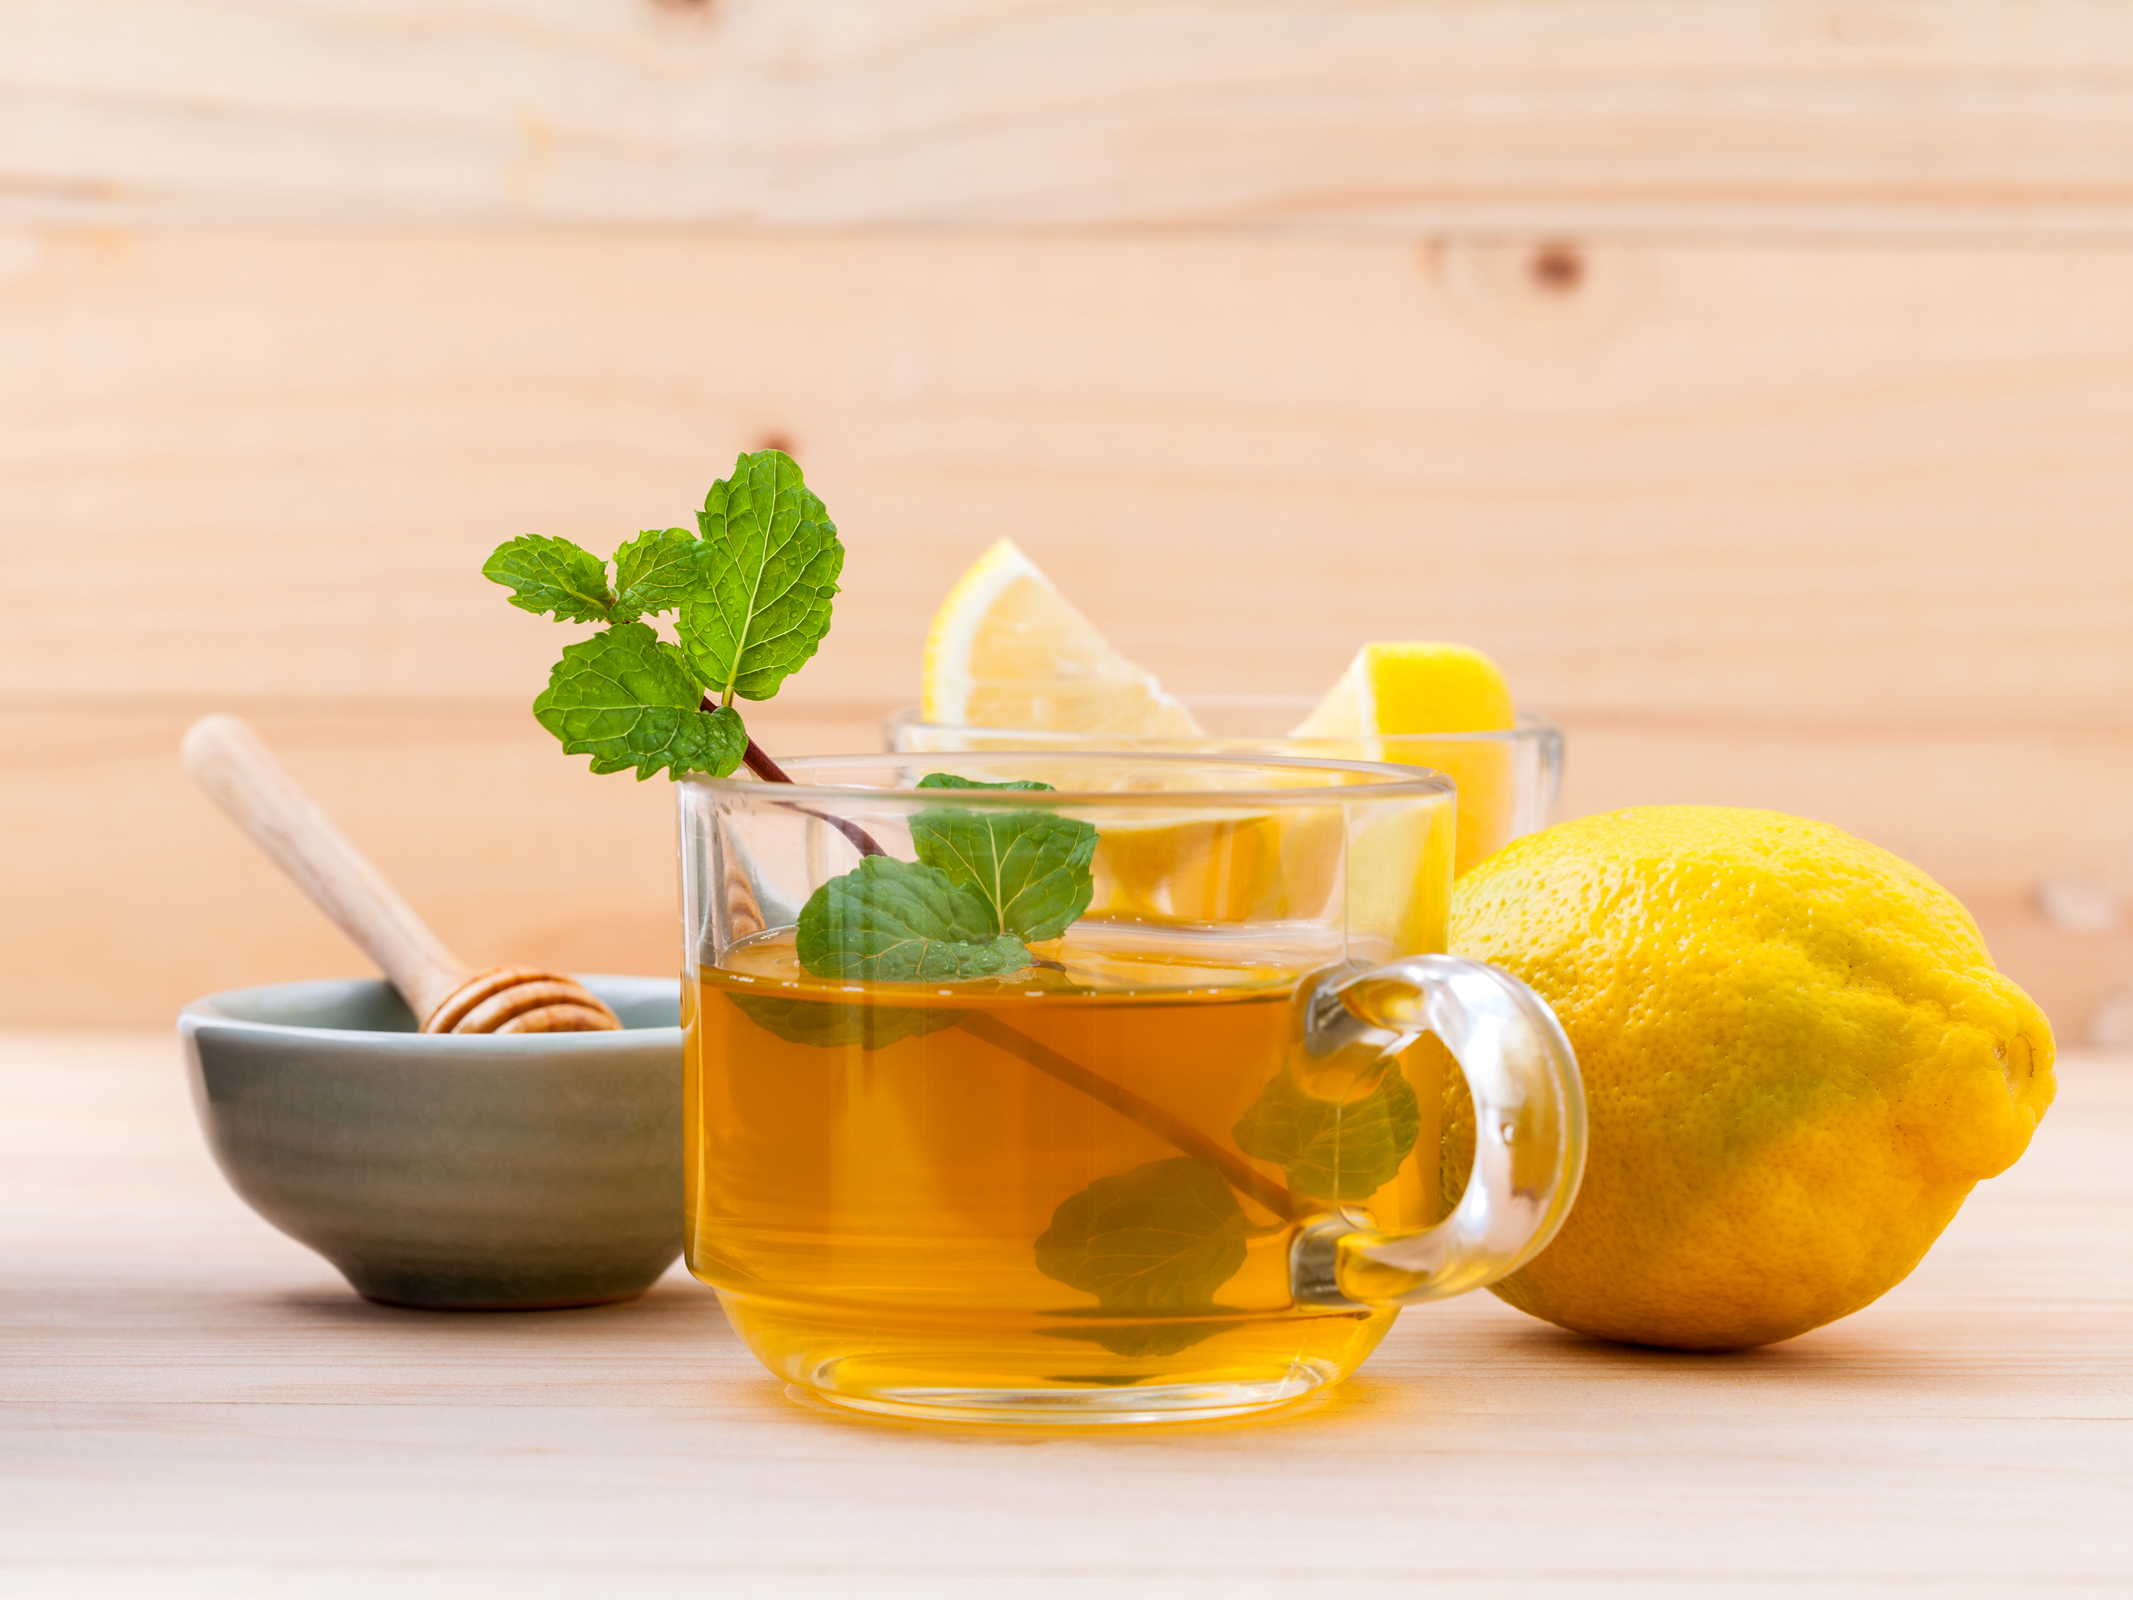 http://www.shutterstock.com/pic-311402678/stock-photo-cup-of-herbal-tea-with-fresh-green-mint-honey-and-lemon-on-wooden-background.html?src=mLB-sItxTdAyDfIfY0QjBw-2-9